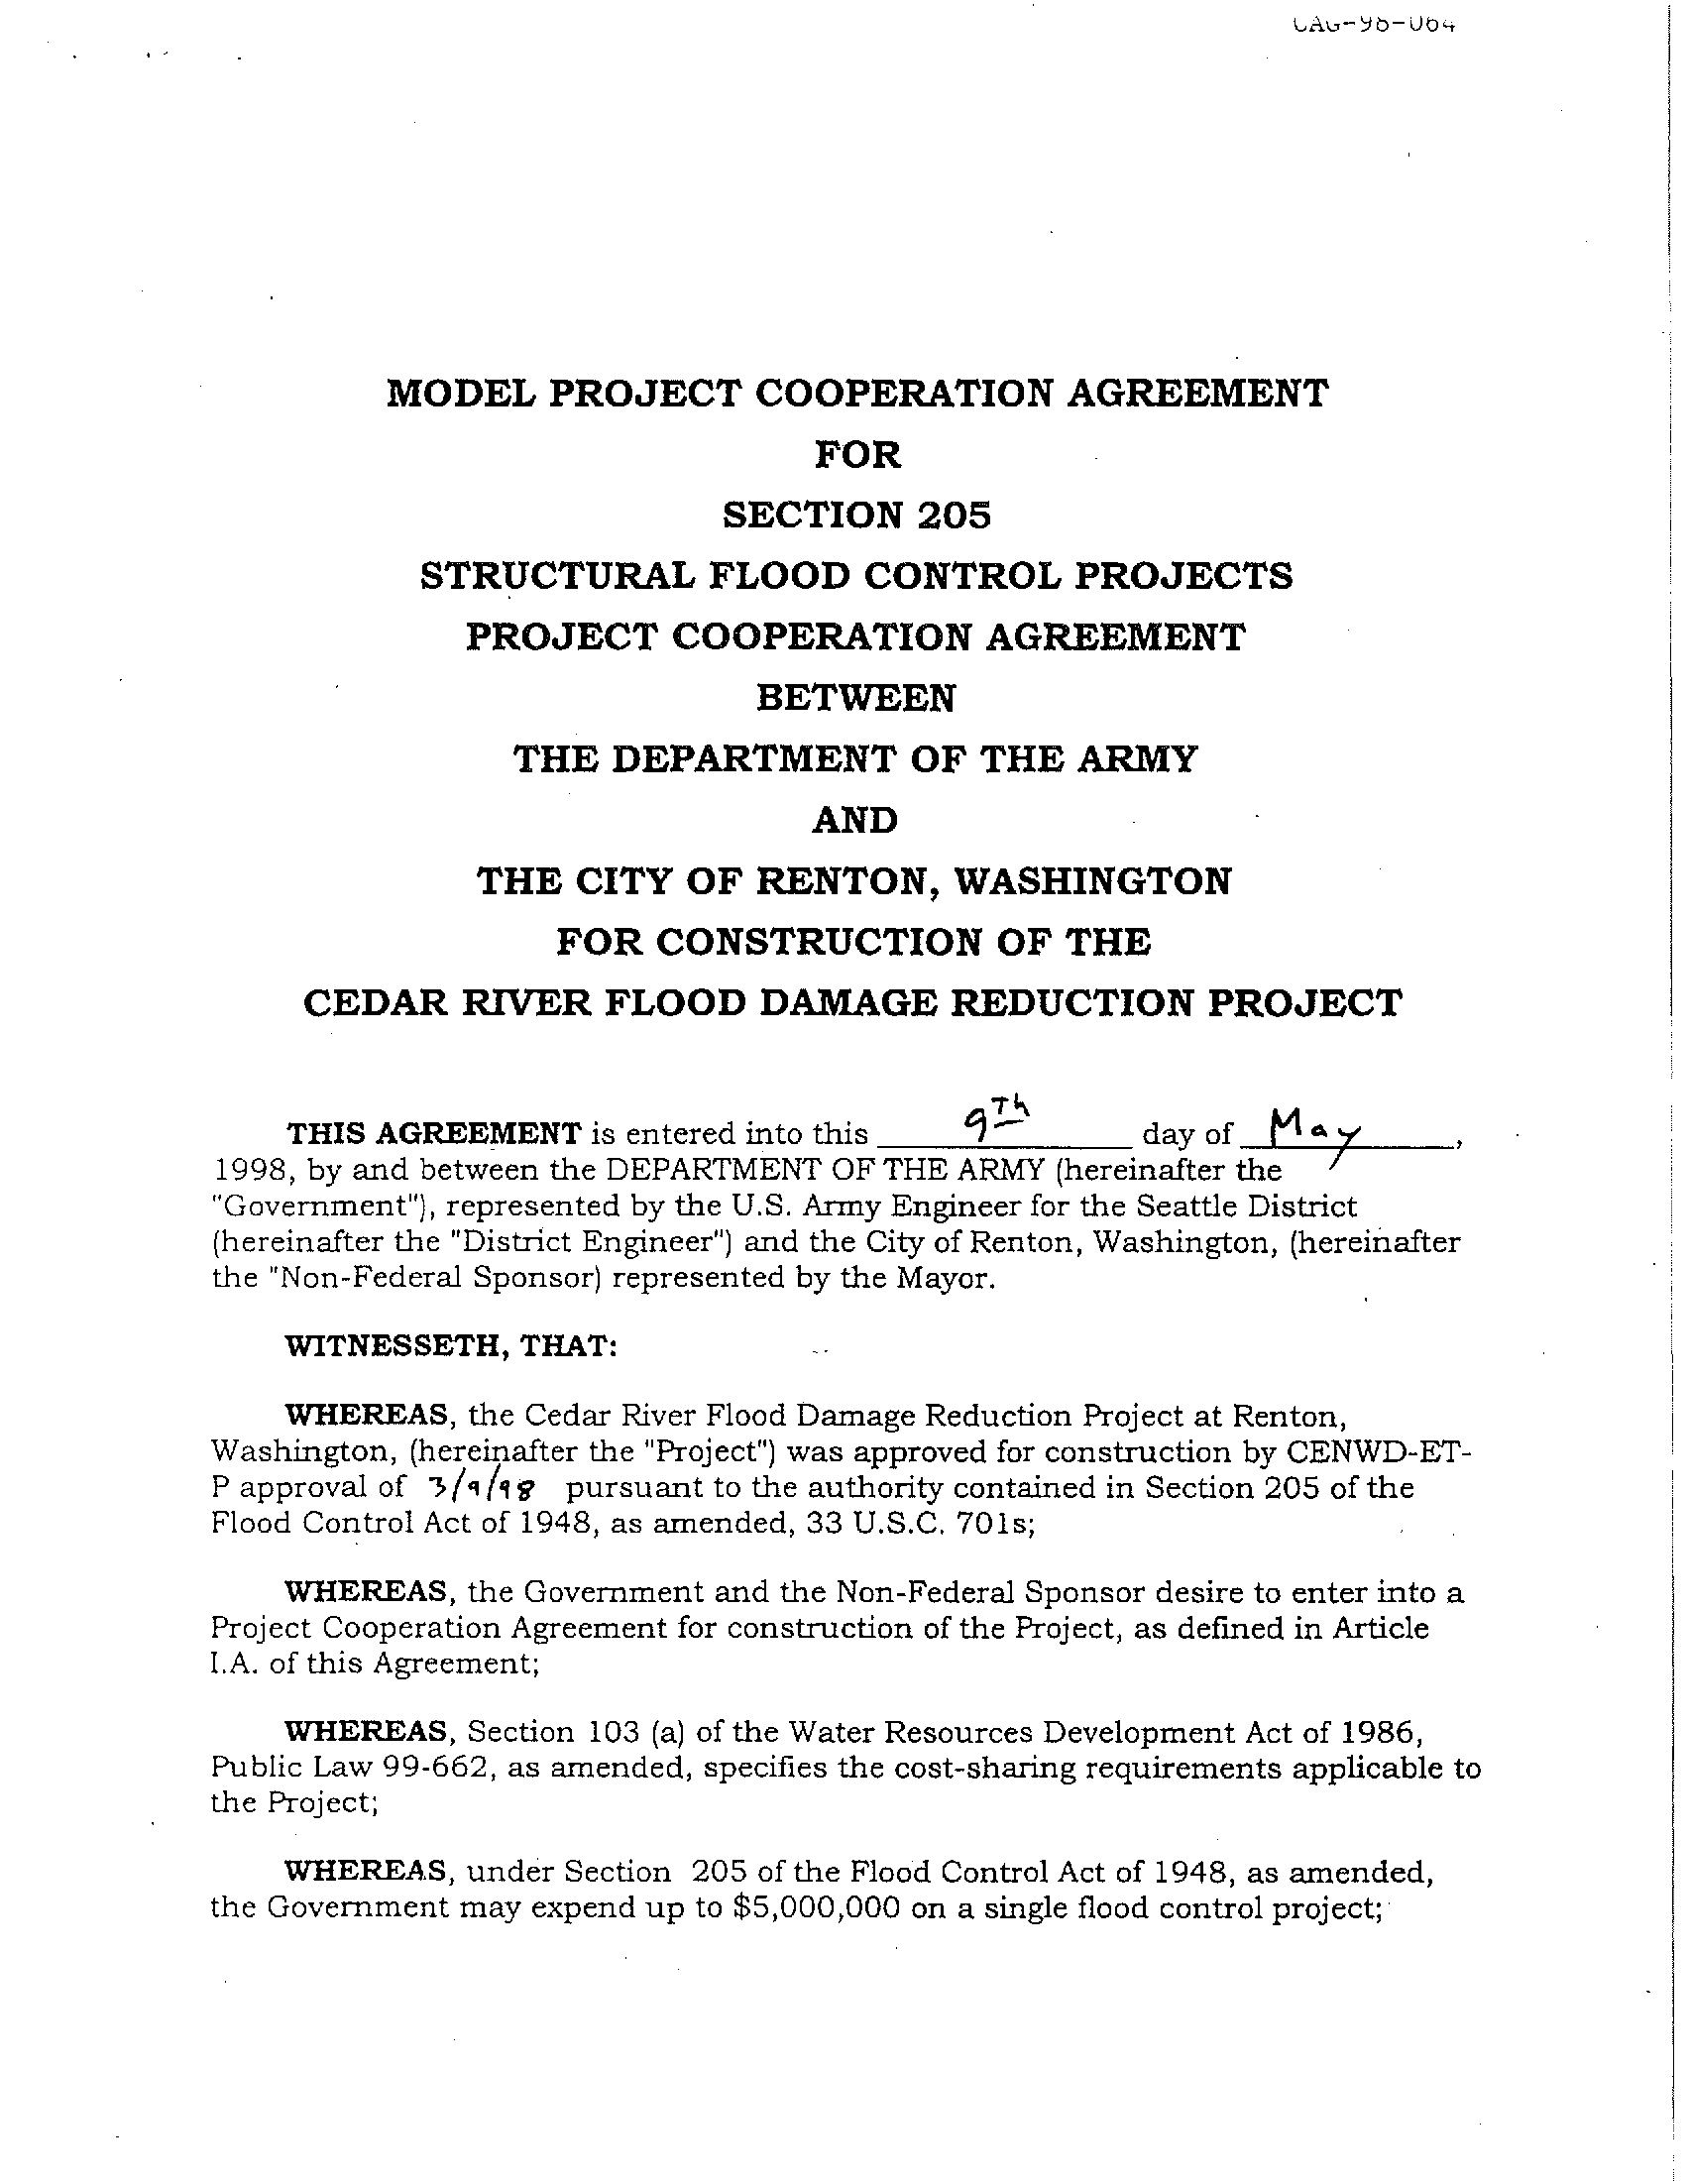 Model project cooperation agreement for Section 205 structural flood